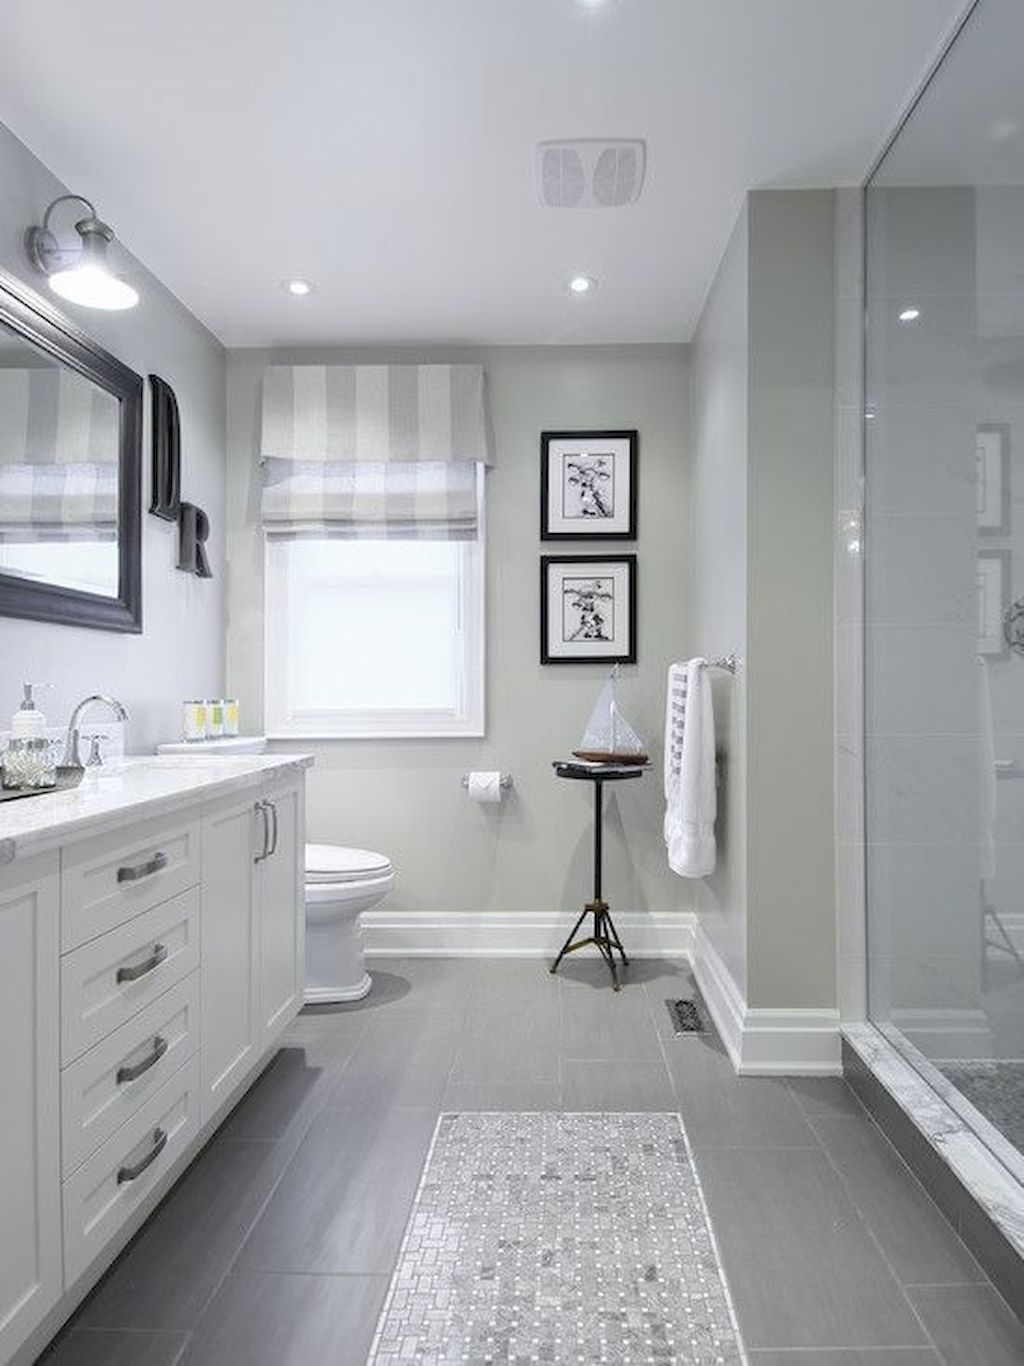 77+ Bathroom Tile Design Ideas For Your Home (With images ...